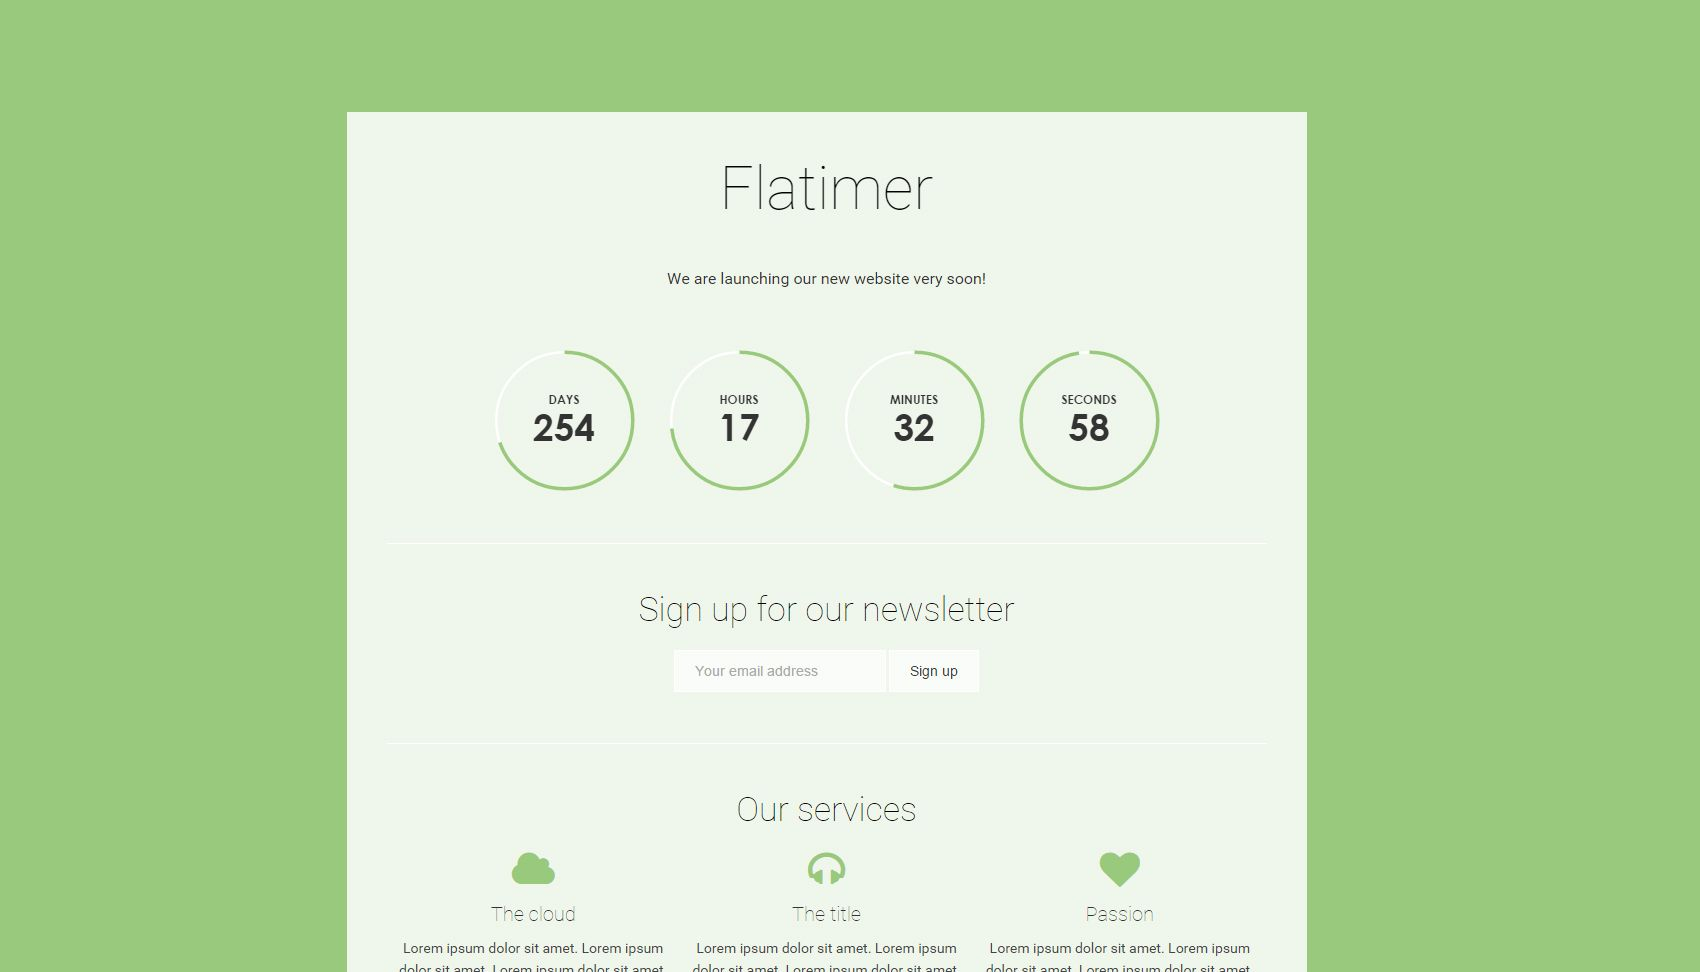 Flatimer - Coming soon HTML Template Screenshot 2